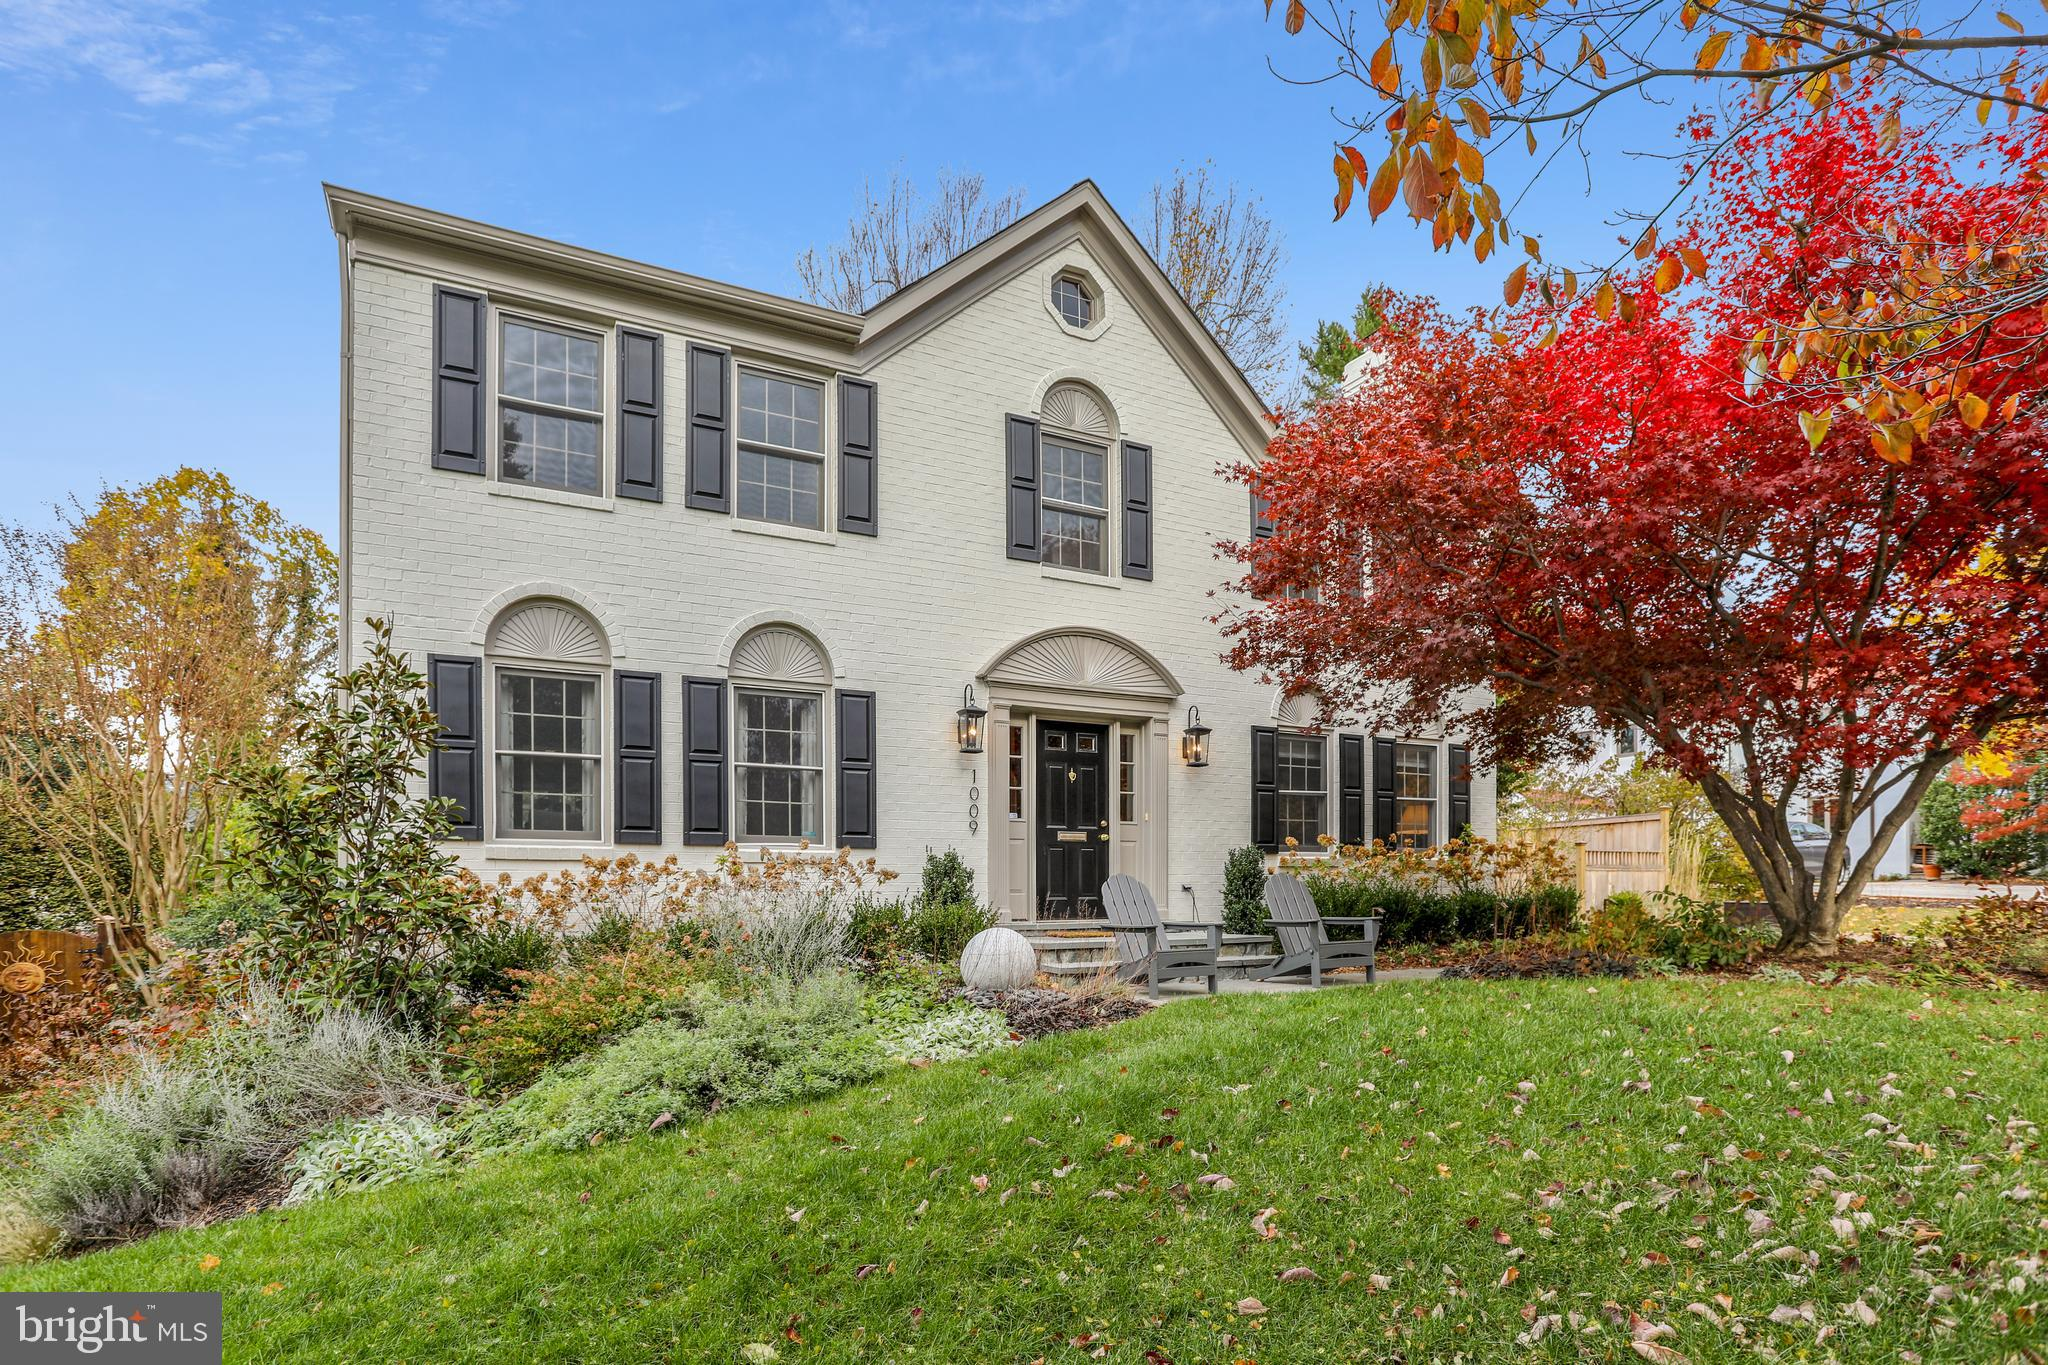 PRICE REDUCED -Welcome home to this~stately four bedroom Colonial ideally located in Woodside Park. The~home offers a comfortable yet elegant space~for everyday living and entertaining. The main level features an entry foyer,~family room~with fireplace, and study with built-ins. At the rear of the house, there~s a formal dining room, spacious eat-in kitchen with island seating, and sliding glass door to the deck. A powder room, laundry room, and side entrance complete the main level. Upstairs there is a~generous~Master suite with bedroom, walk-in closet, and en-suite full bathroom; there are~three additional~bedrooms~and~a~full~hall~bath.~On the lower level,~the rec room provides ample space for gathering family and friends; a powder room and bonus room (bedroom, office, or den) are also on this level.~The professionally landscaped lot features mature plantings, fenced backyard, and rear deck.~The home~is nestled on a quiet street~and there~s ample off-street parking in the driveway.The desirable location puts you just a few blocks from~downtown Silver Spring. Enjoy a variety of restaurants and shops, the year-round farmers market, public library, and entertainment venues~including The Fillmore and~AFI~Silver Theatre.~Nearby~Sligo~Creek Park offers miles of hiking/biking trails, golf, and playgrounds.~Commute with ease - you~re less than a~mile to the Silver Spring Metro and you have convenient access to~local~bus routes, the Beltway, and major commuter routes.